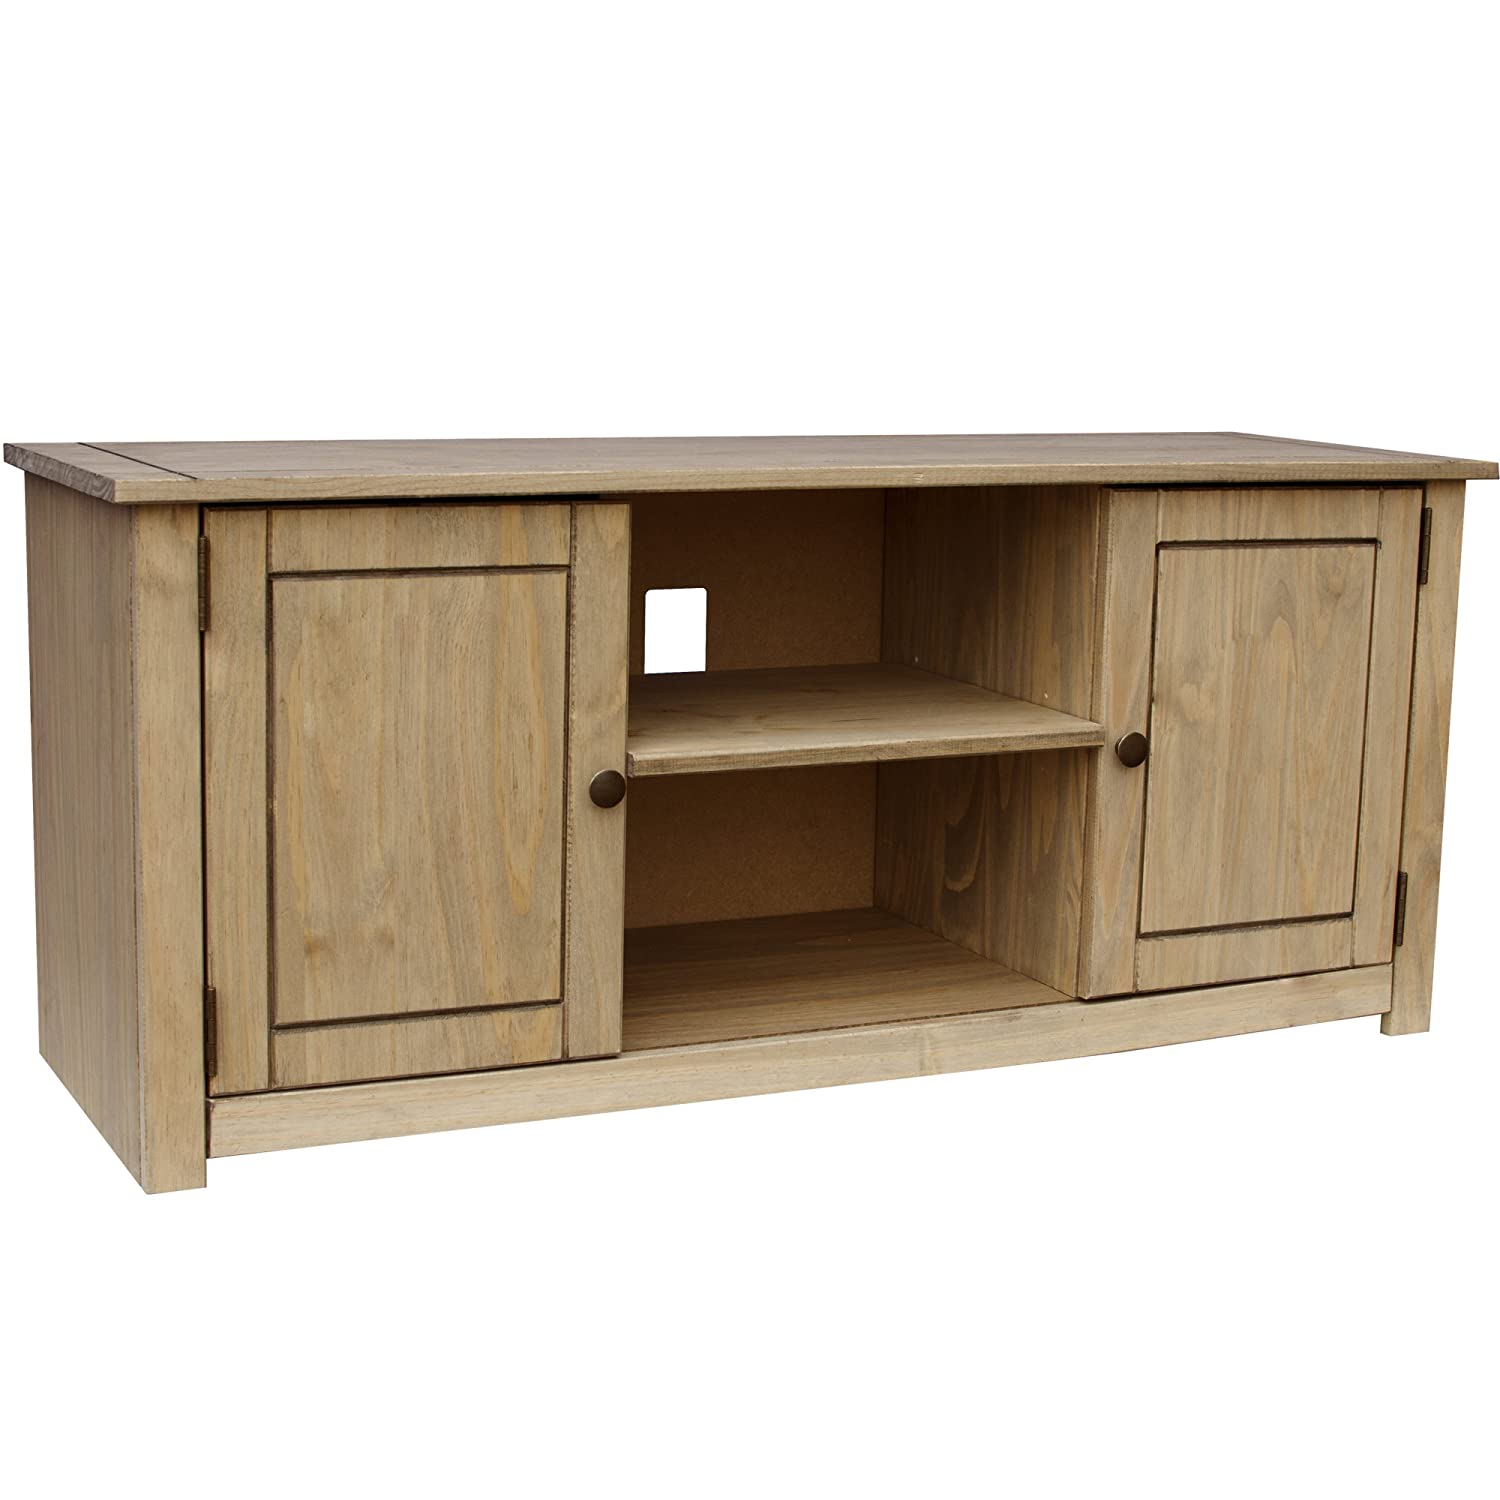 Wooden solid pine flat screen tv unit entertainment for Flat furniture